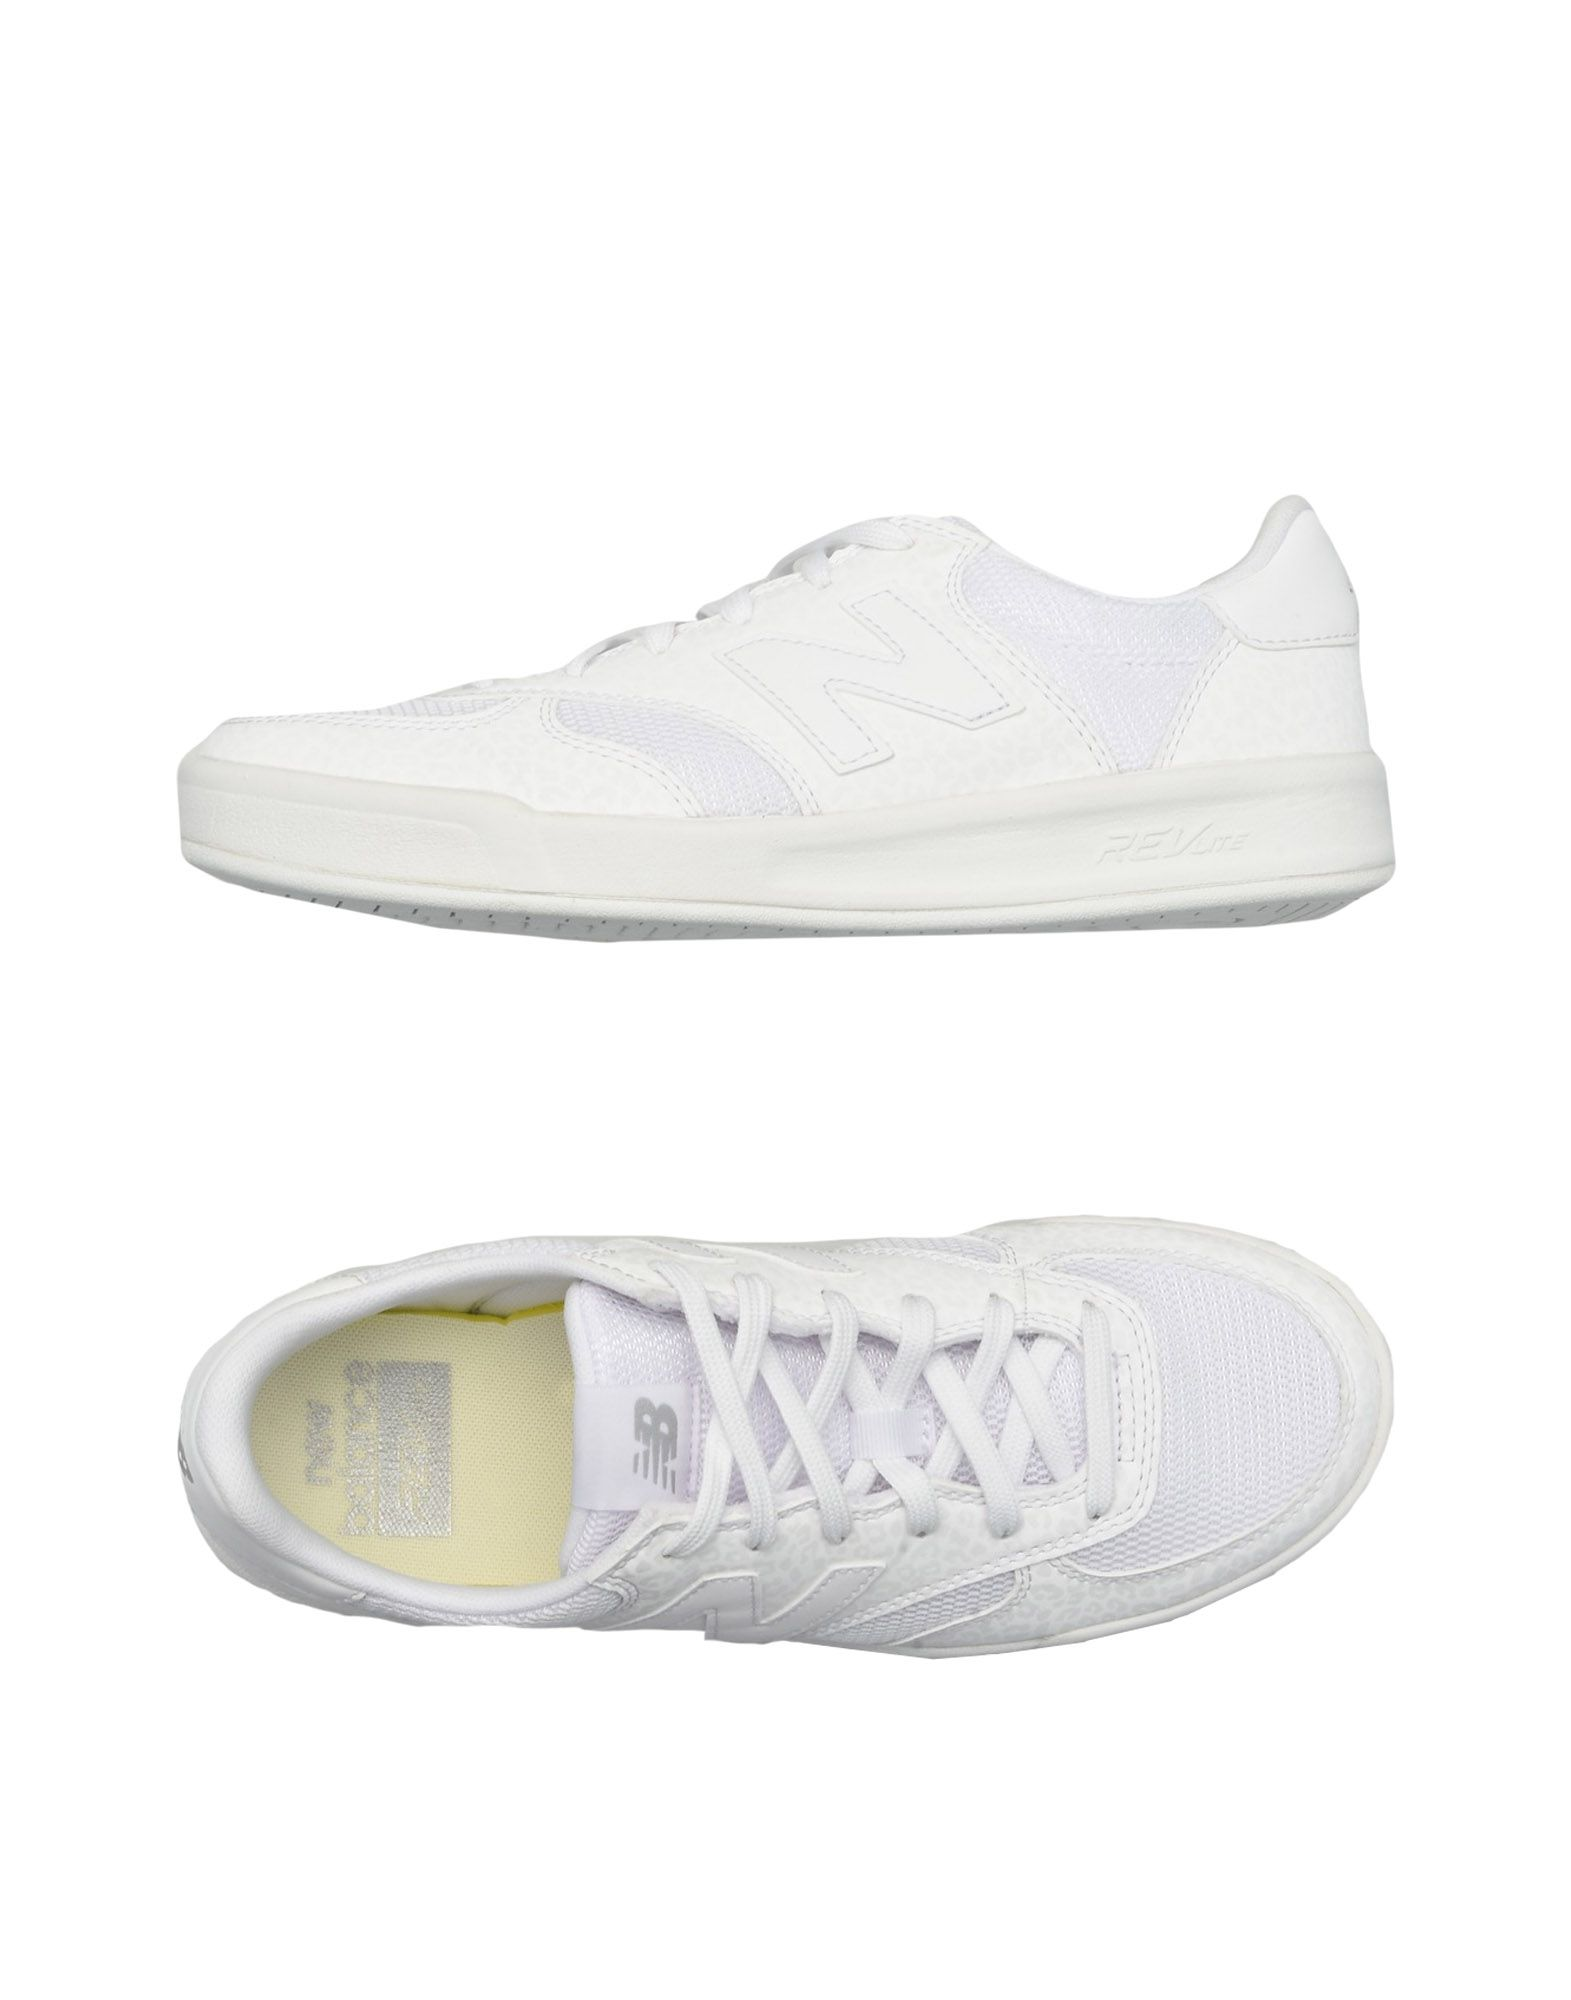 Zapatillas New Balance 300 White White 300 Reflective Pack - Mujer - Zapatillas New Balance  Blanco a4b4d8